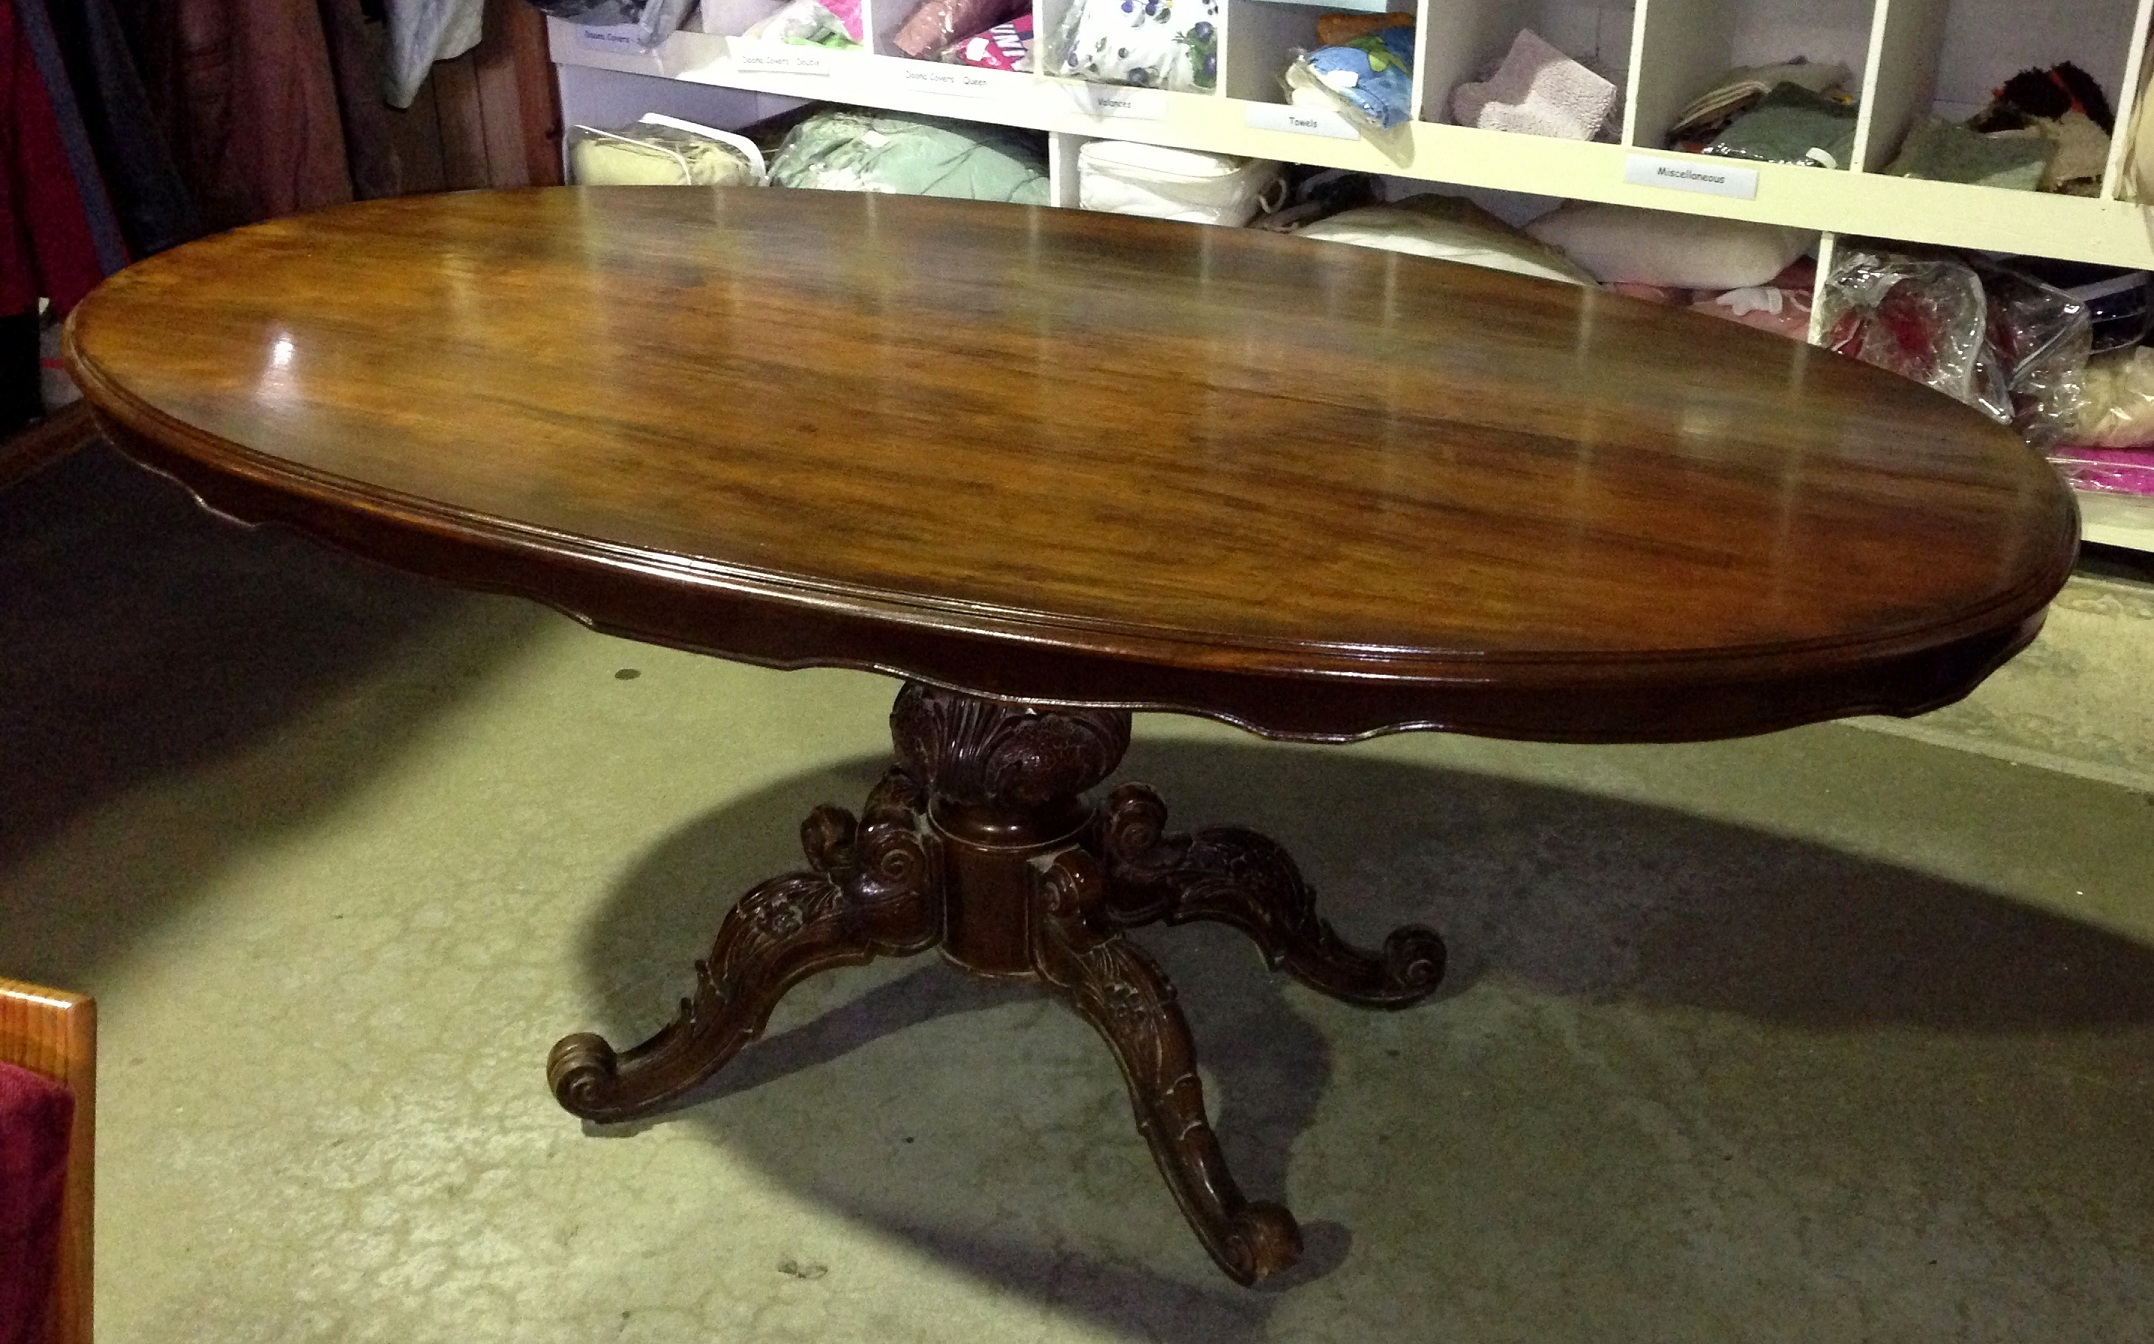 Oval Shaped Dining Table With Apron And Pedestal Base With Carved Legs And  Feet